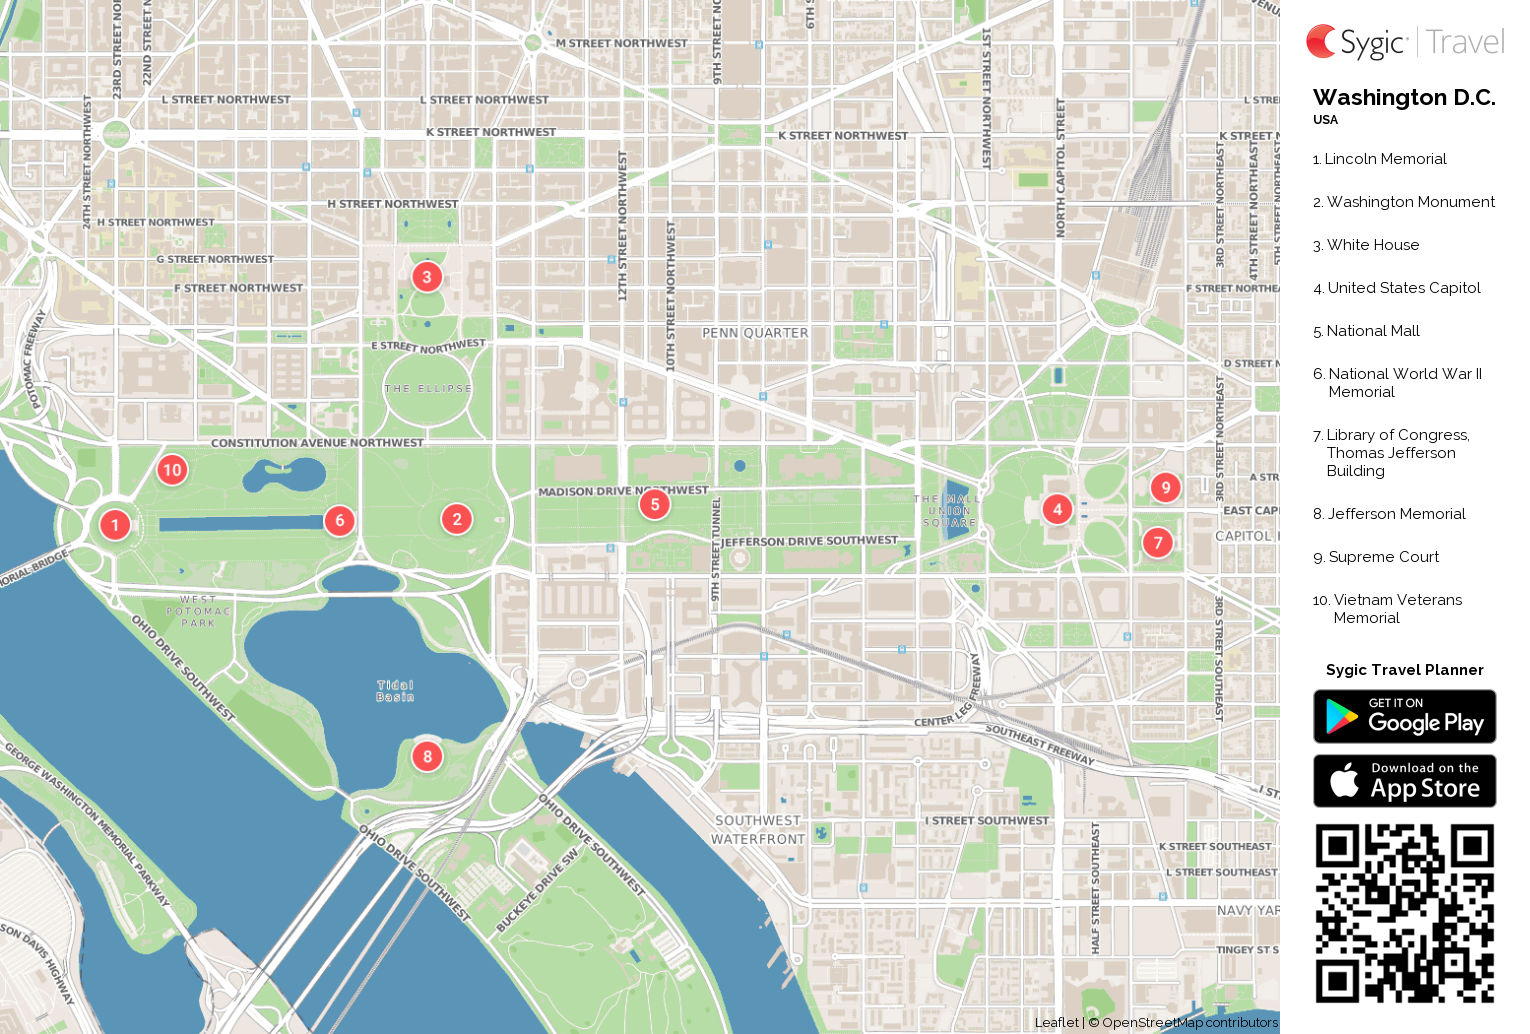 Washington D.C. Printable Tourist Map | Sygic Travel